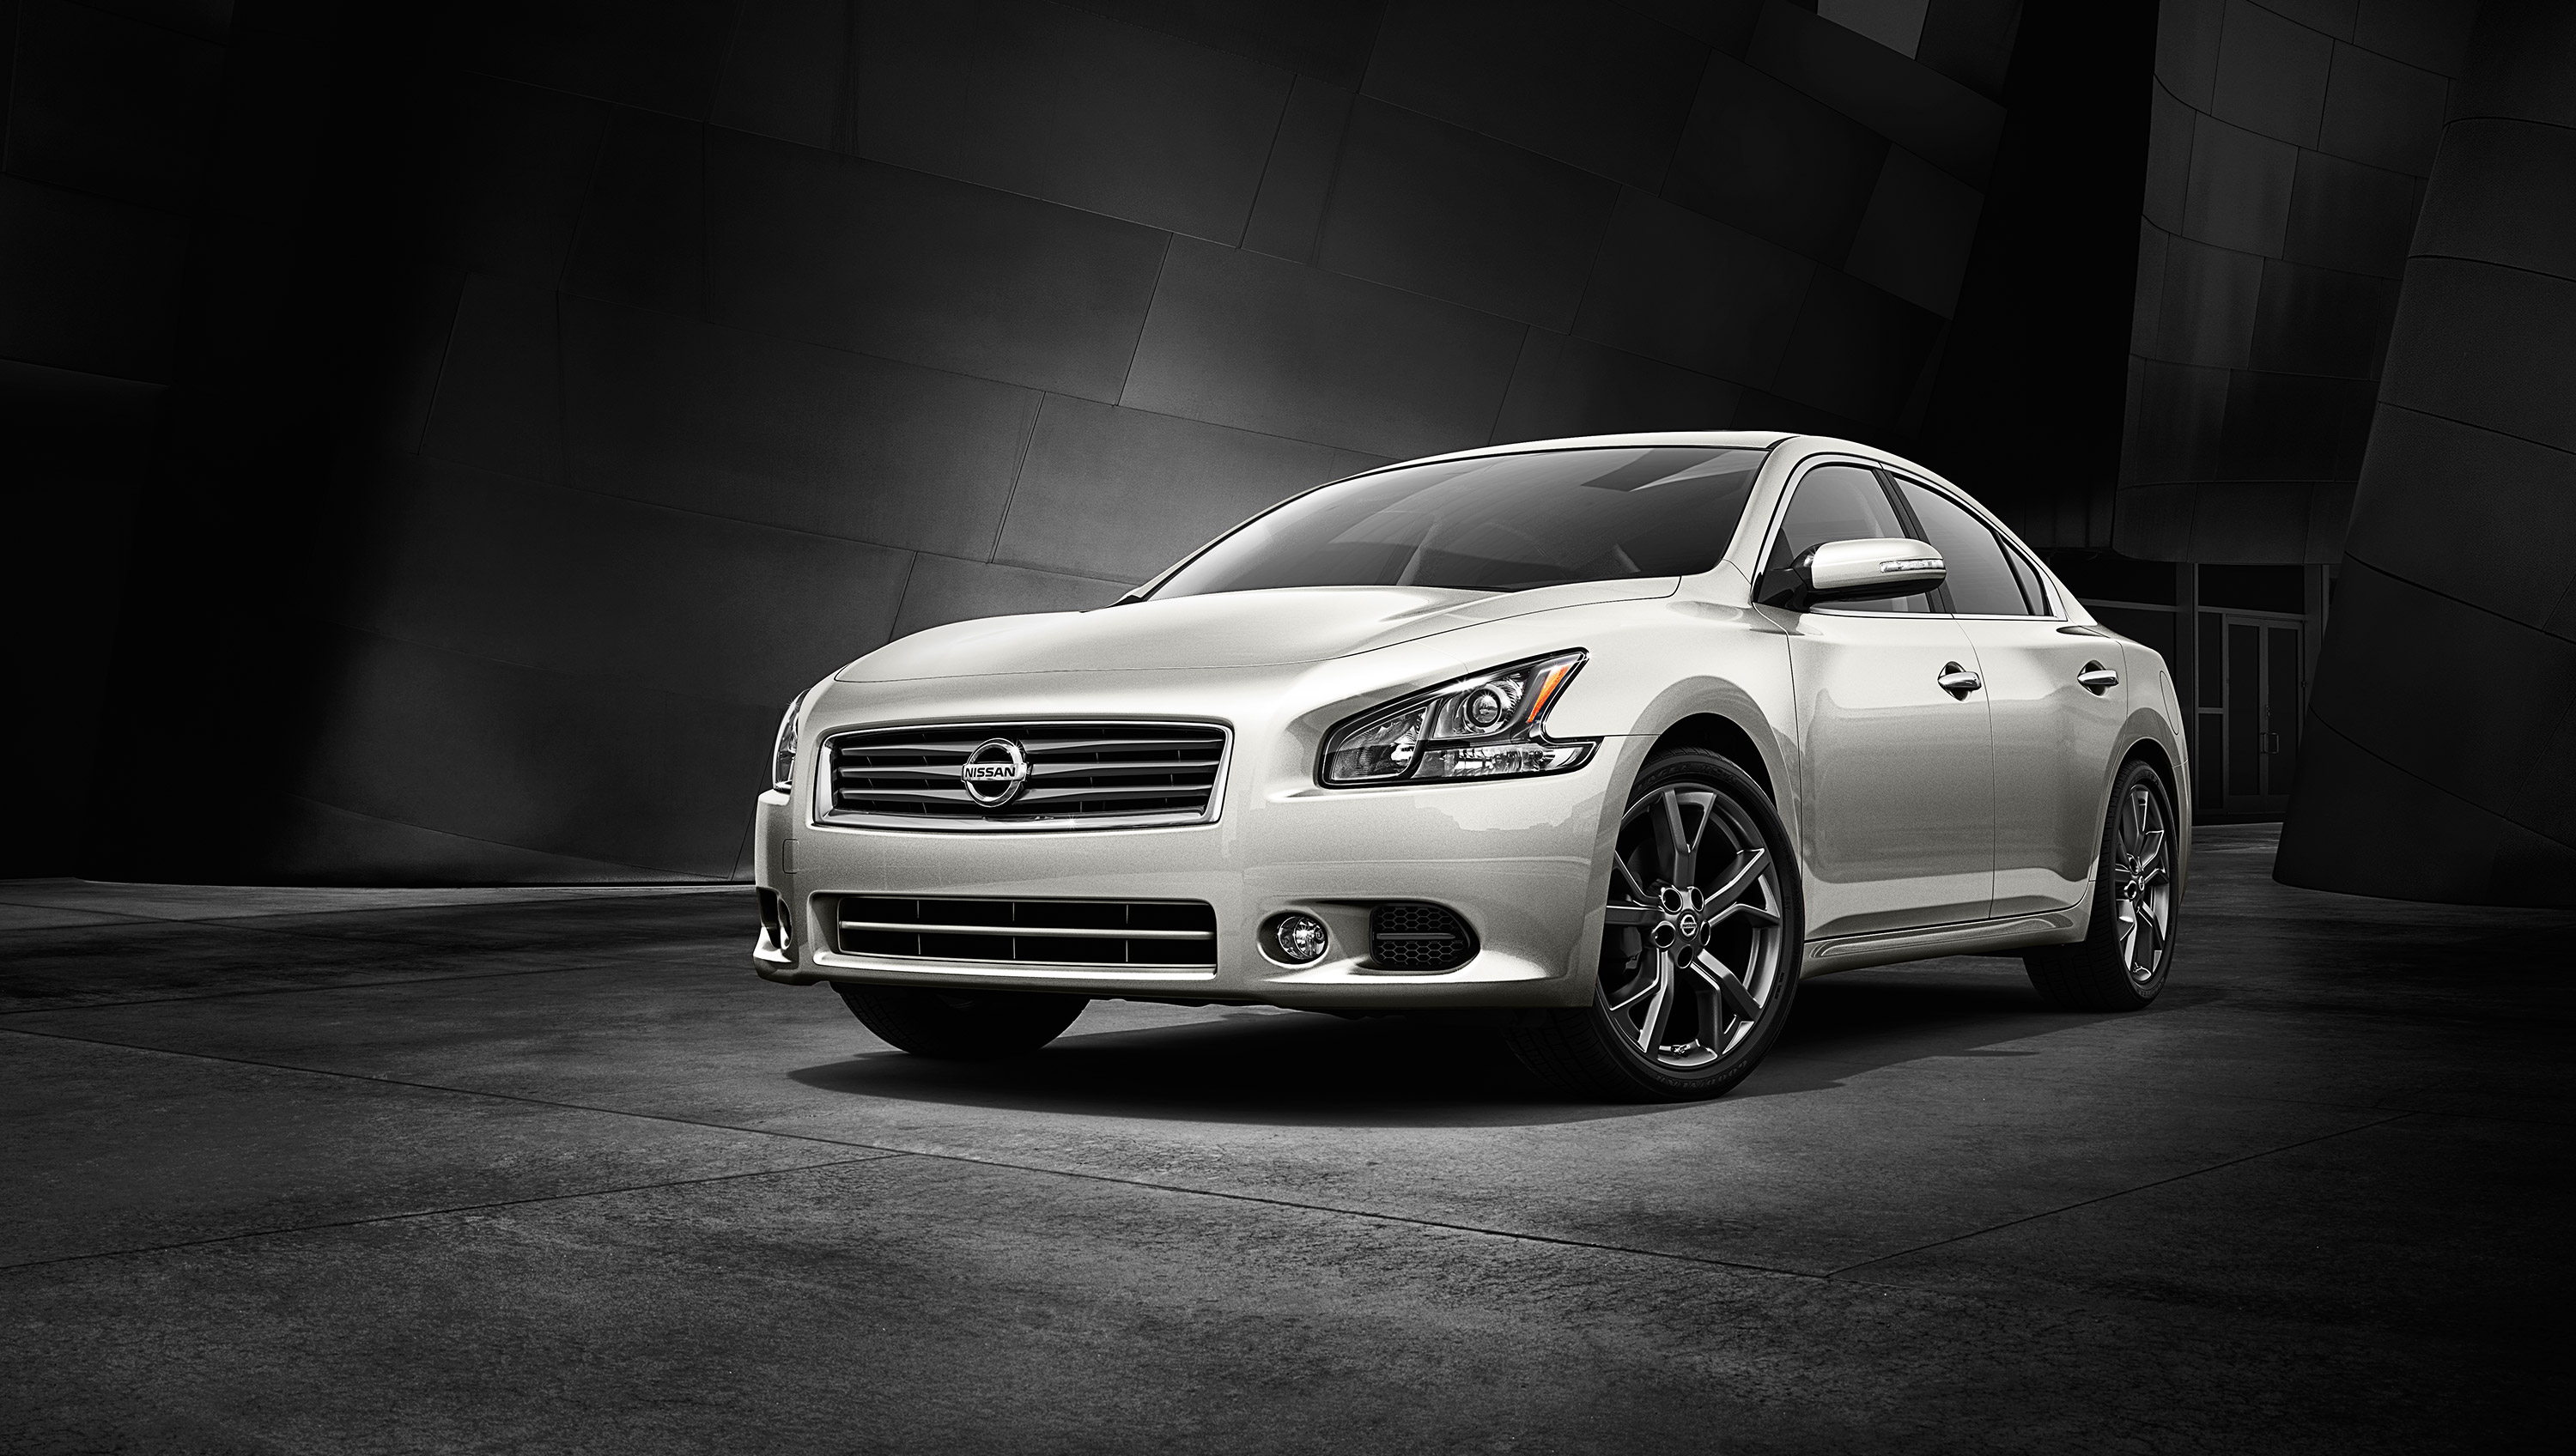 reviewed 2014 nissan maxima in kingston ny. Black Bedroom Furniture Sets. Home Design Ideas